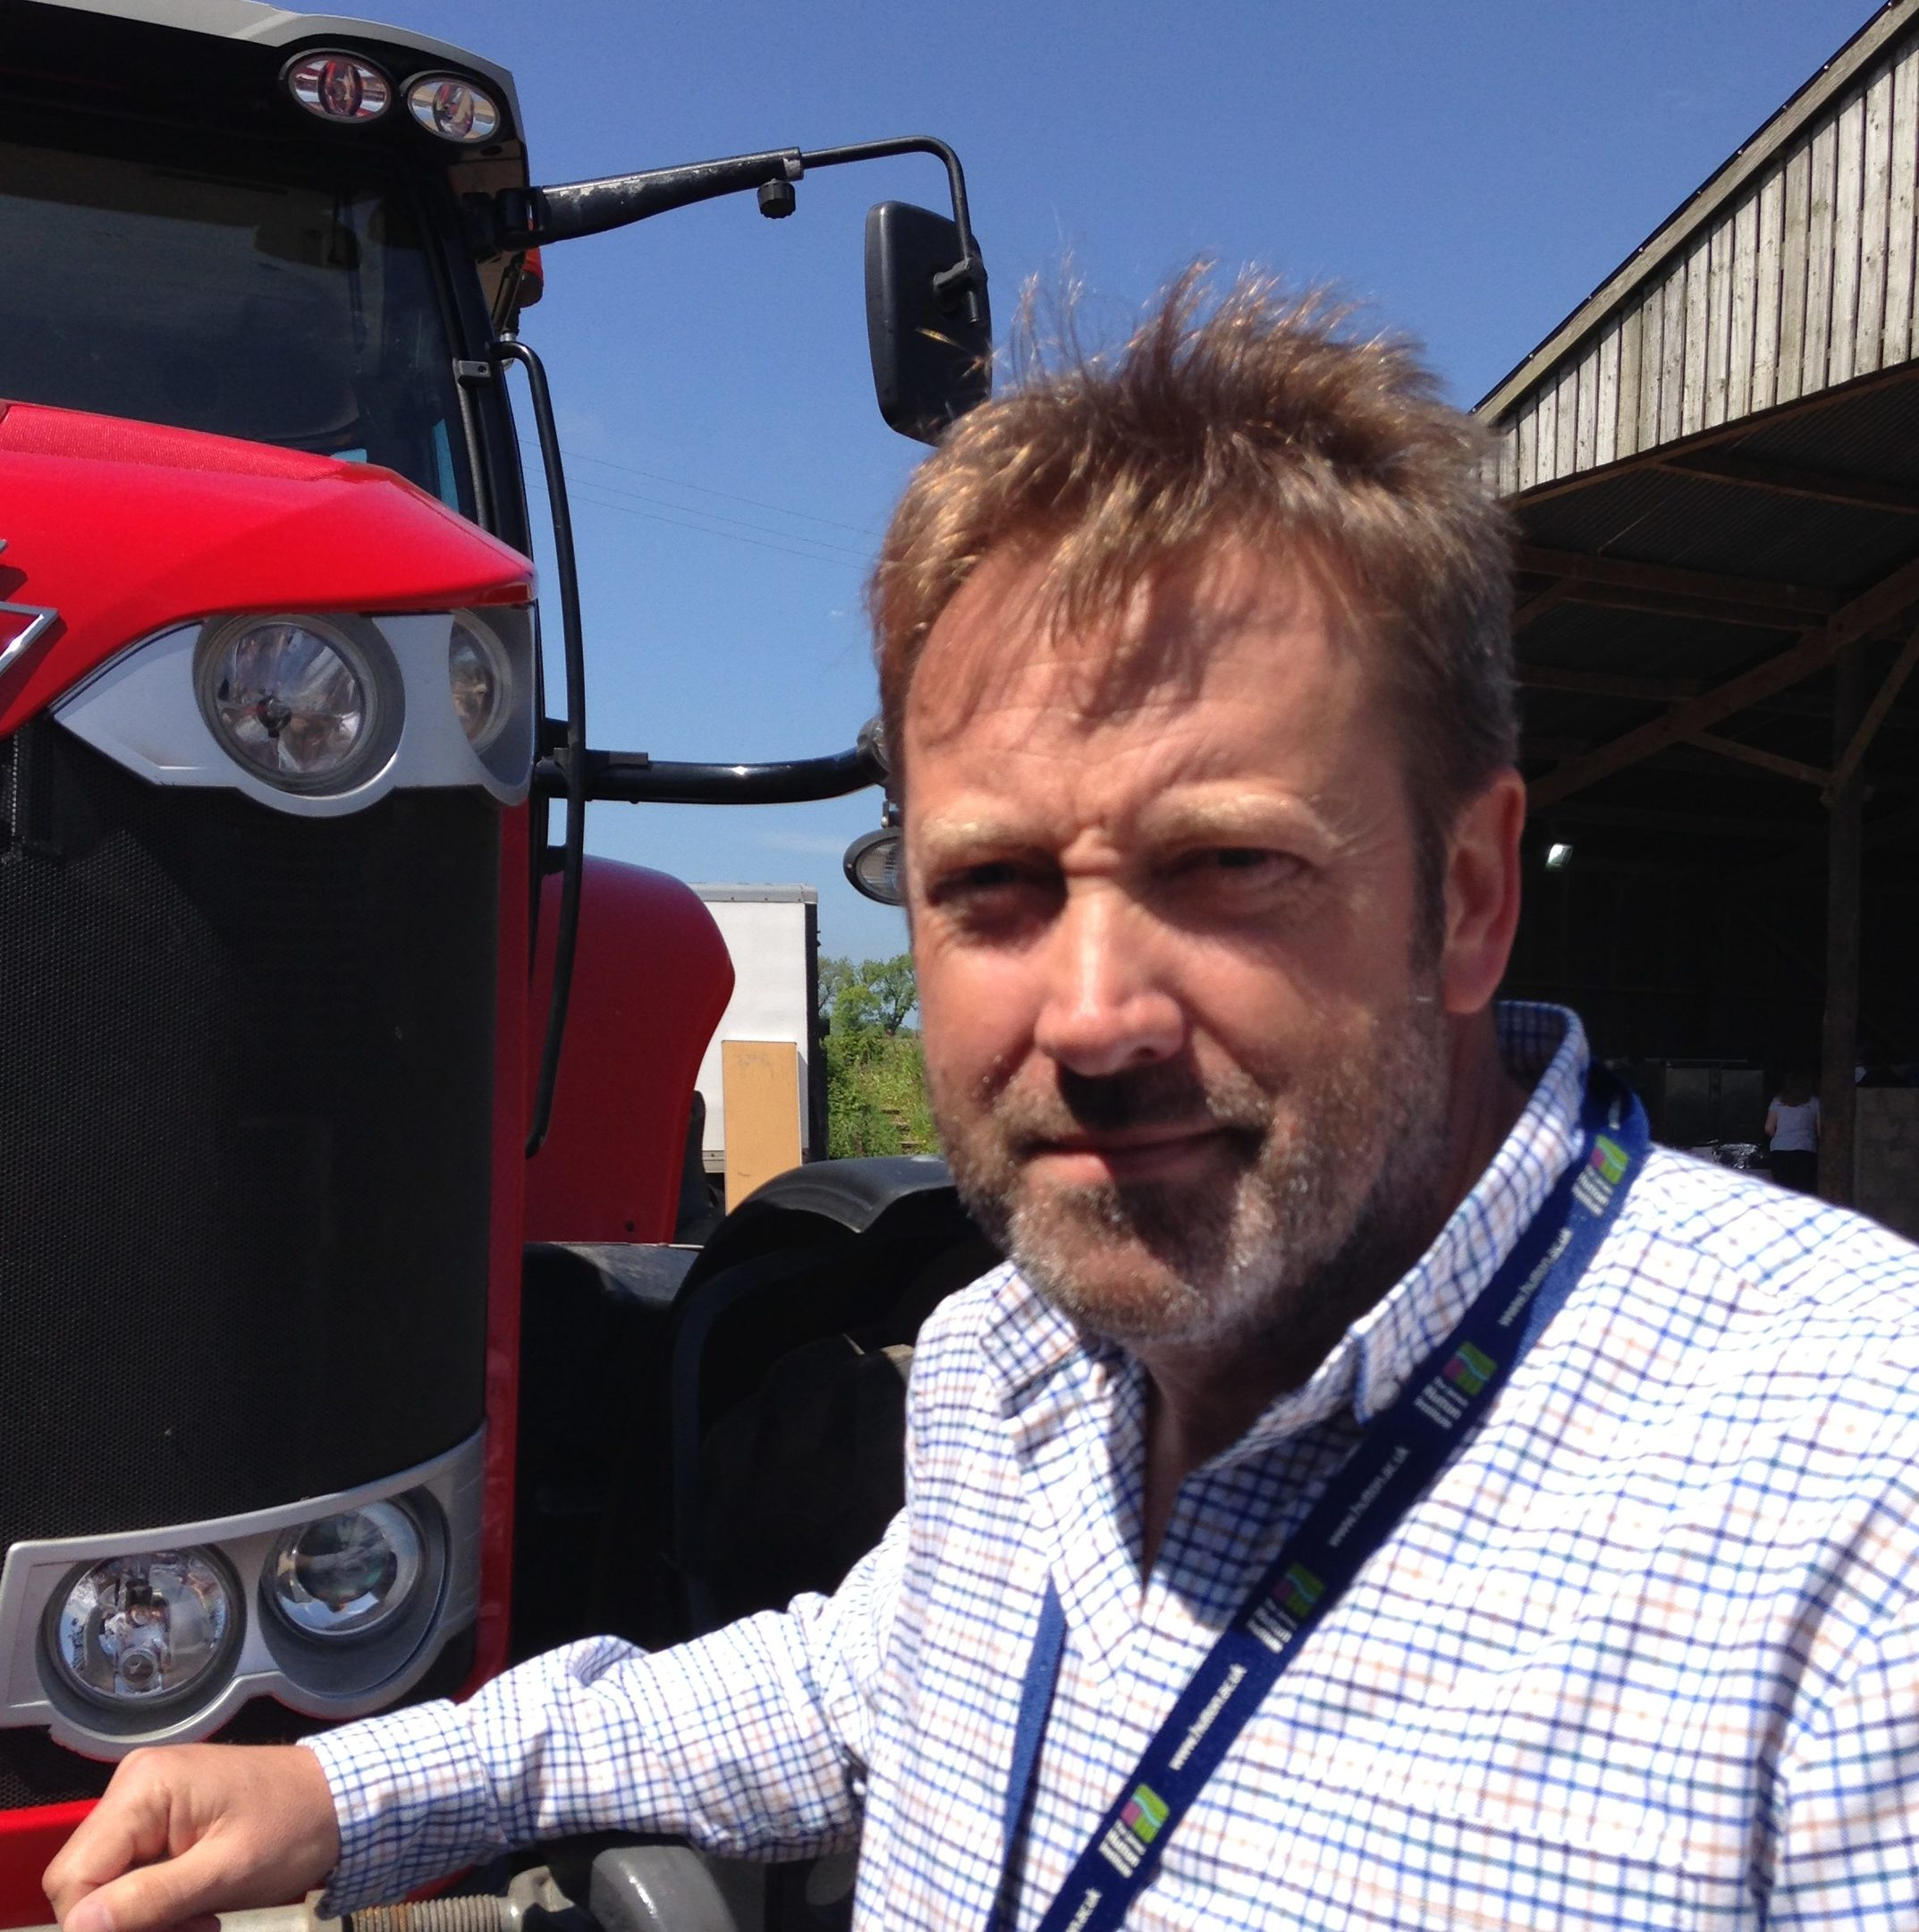 JHI chief executive Colin Campbell said new technology was helping farming face challenges